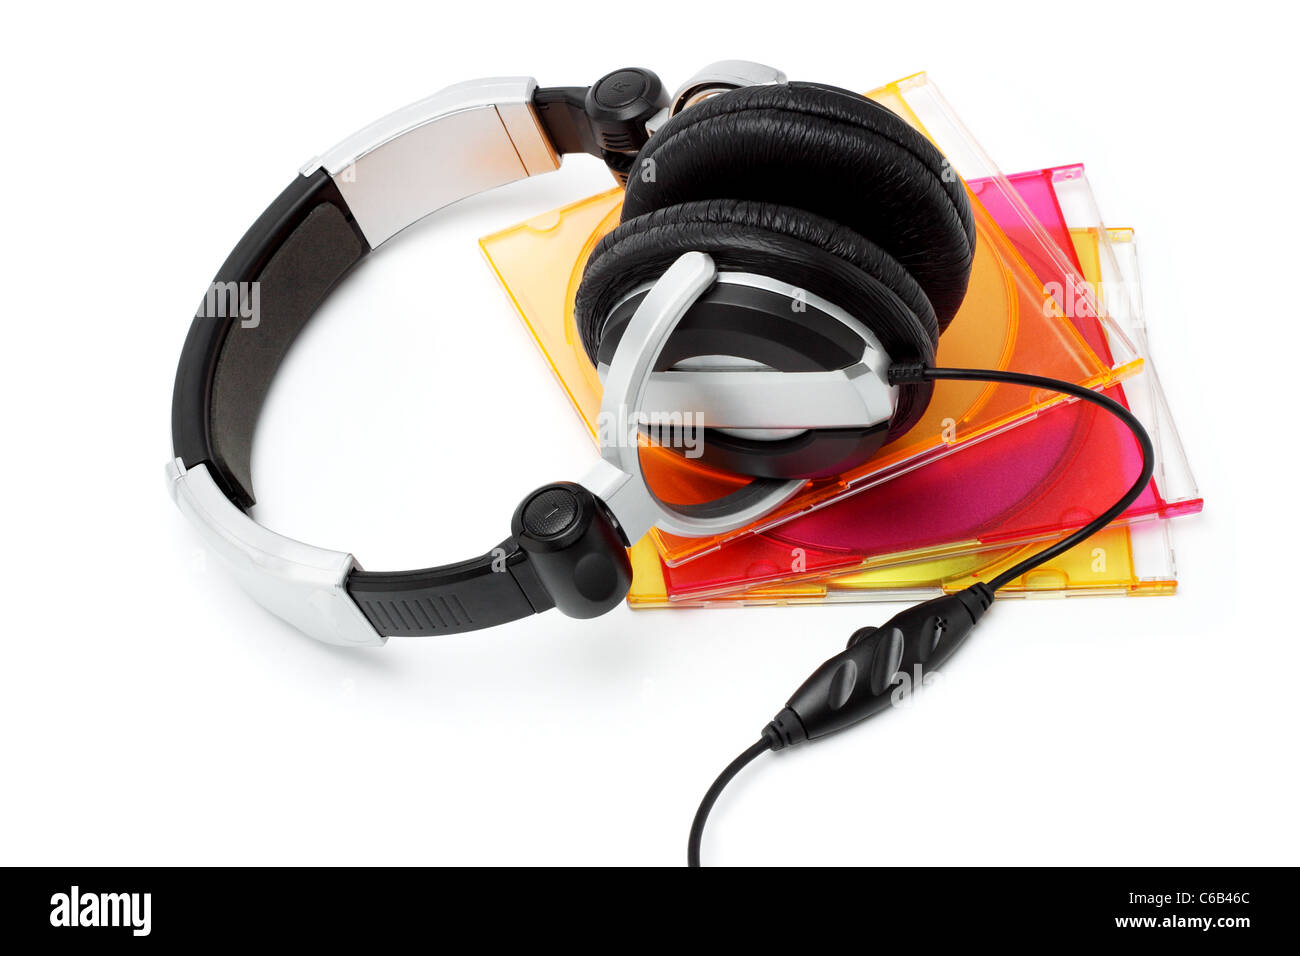 Stereo headphone and compact disks in colorful plastic cases on white background Stock Photo